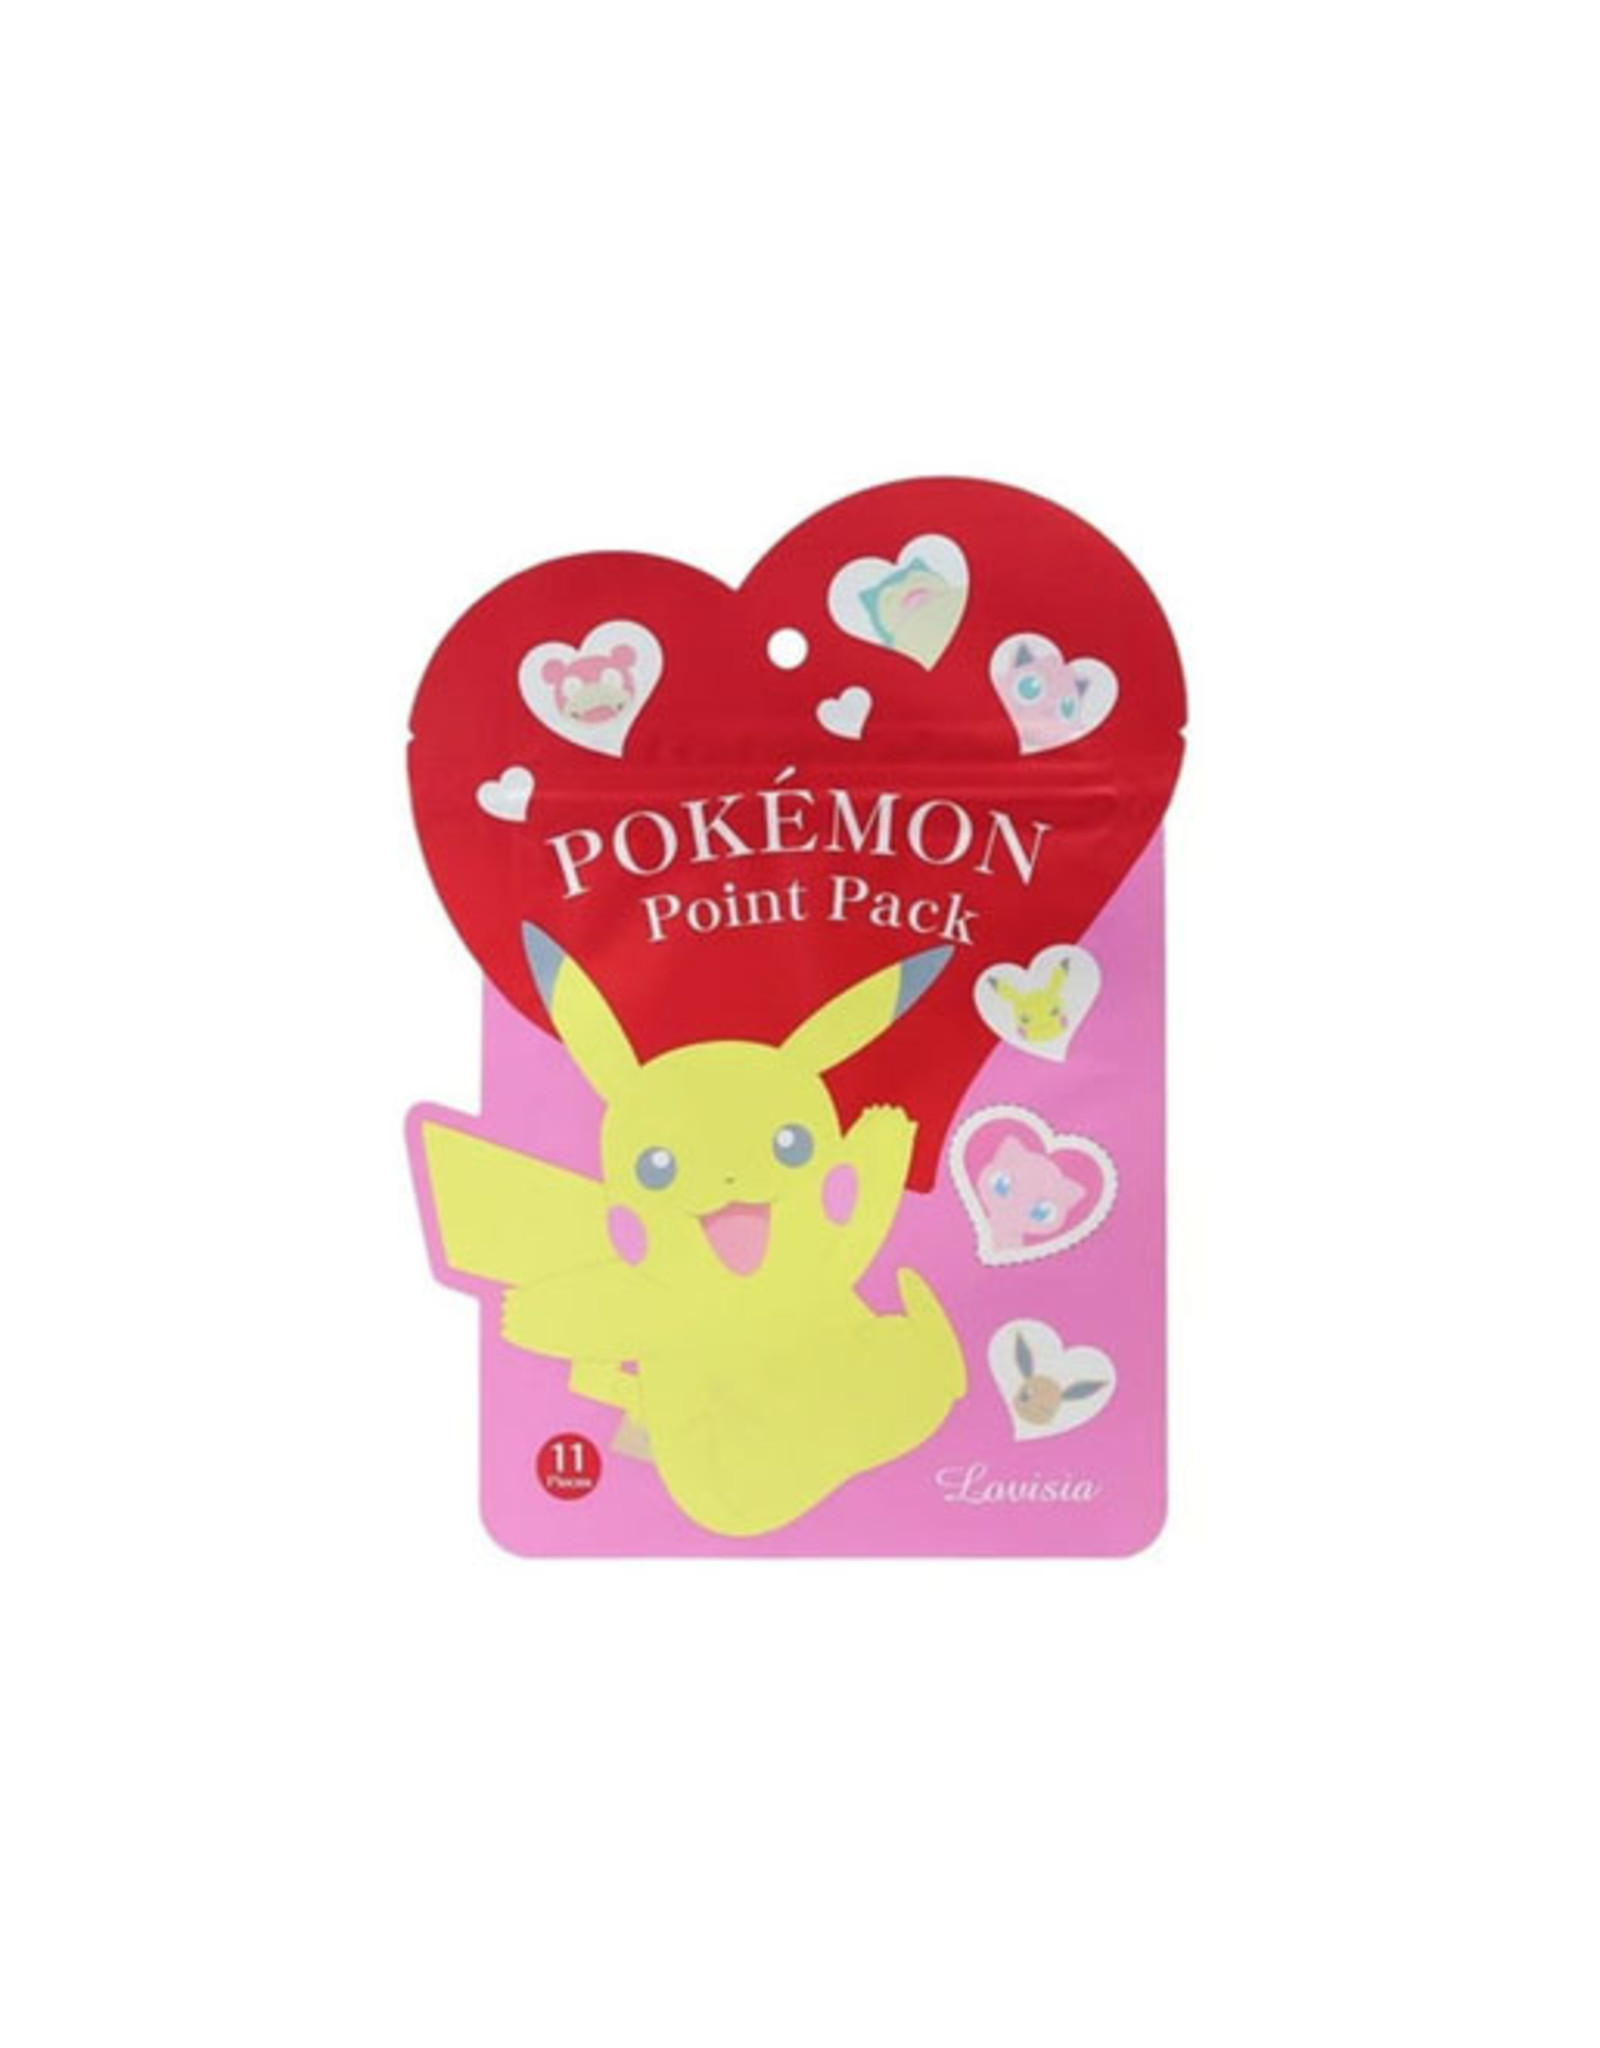 Pokemon Point Pack 11 Patches